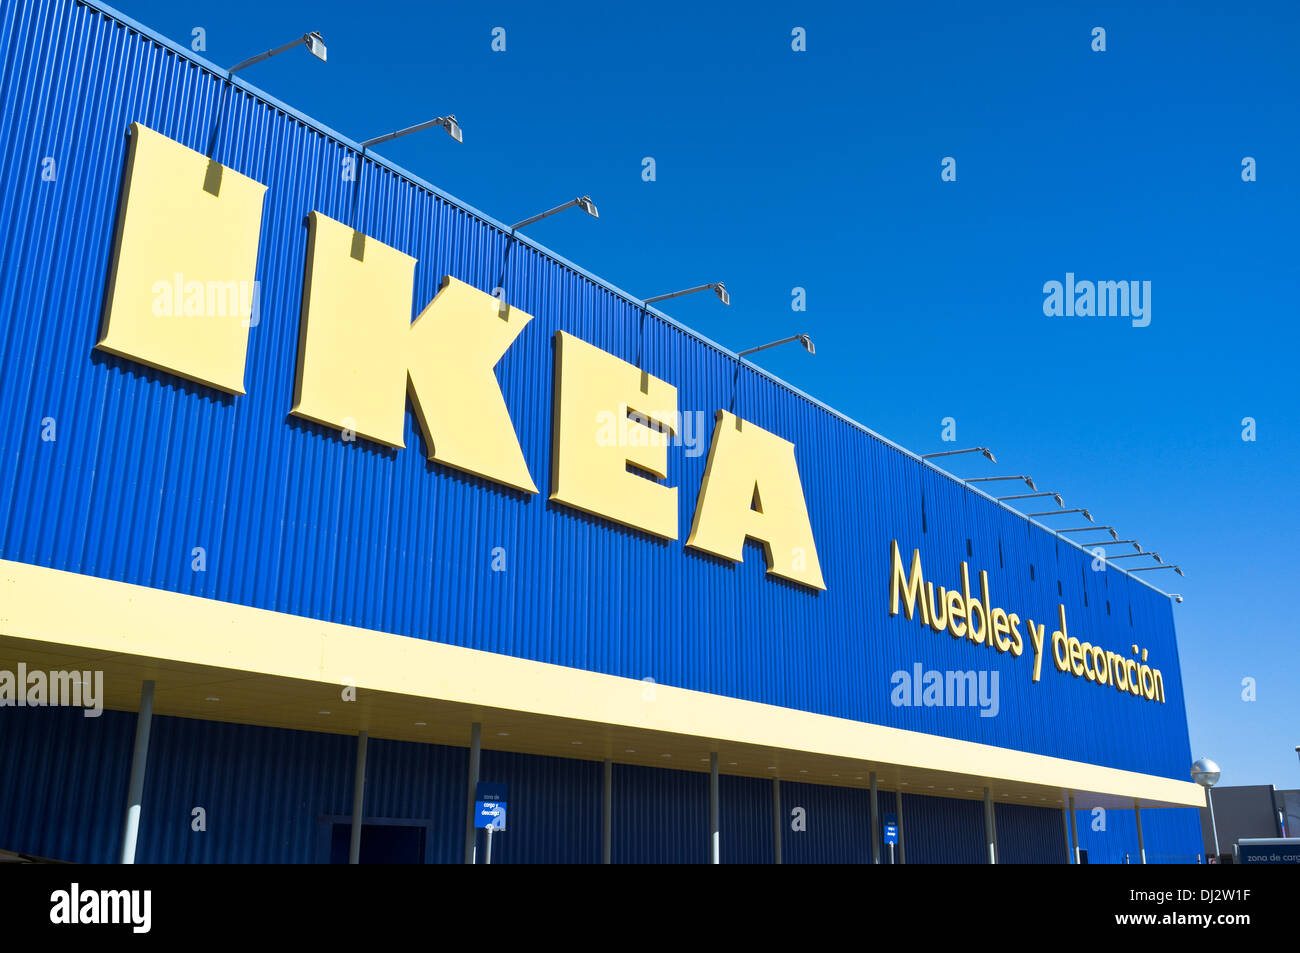 dh ikea superstore europe ikea shop front sign arrecife lanzarote stock photo royalty free. Black Bedroom Furniture Sets. Home Design Ideas